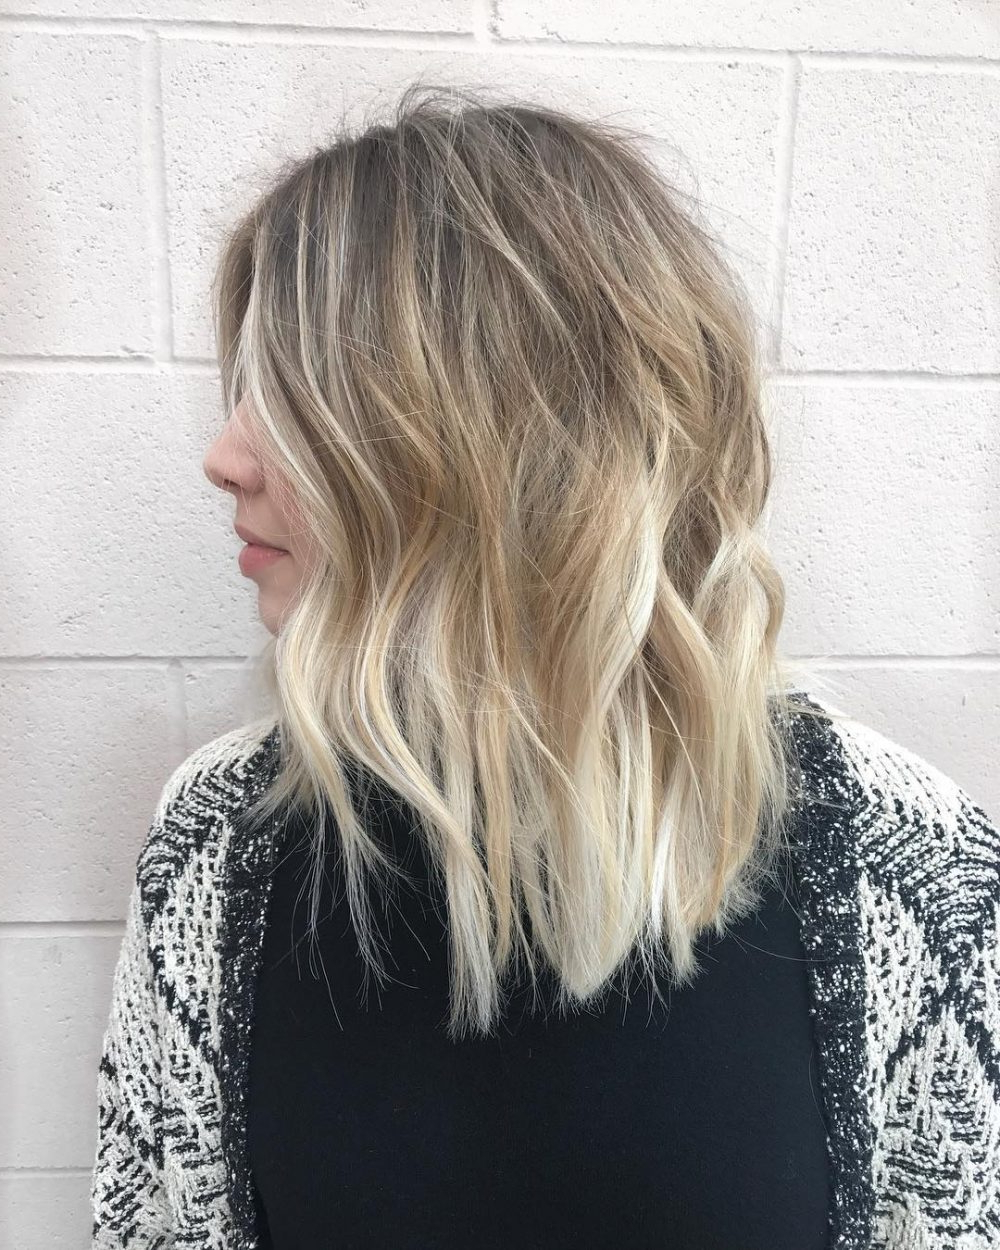 Popular Ash Blonde Bob Hairstyles With Light Long Layers In 45 Chic Choppy Bob Hairstyles For (View 16 of 20)